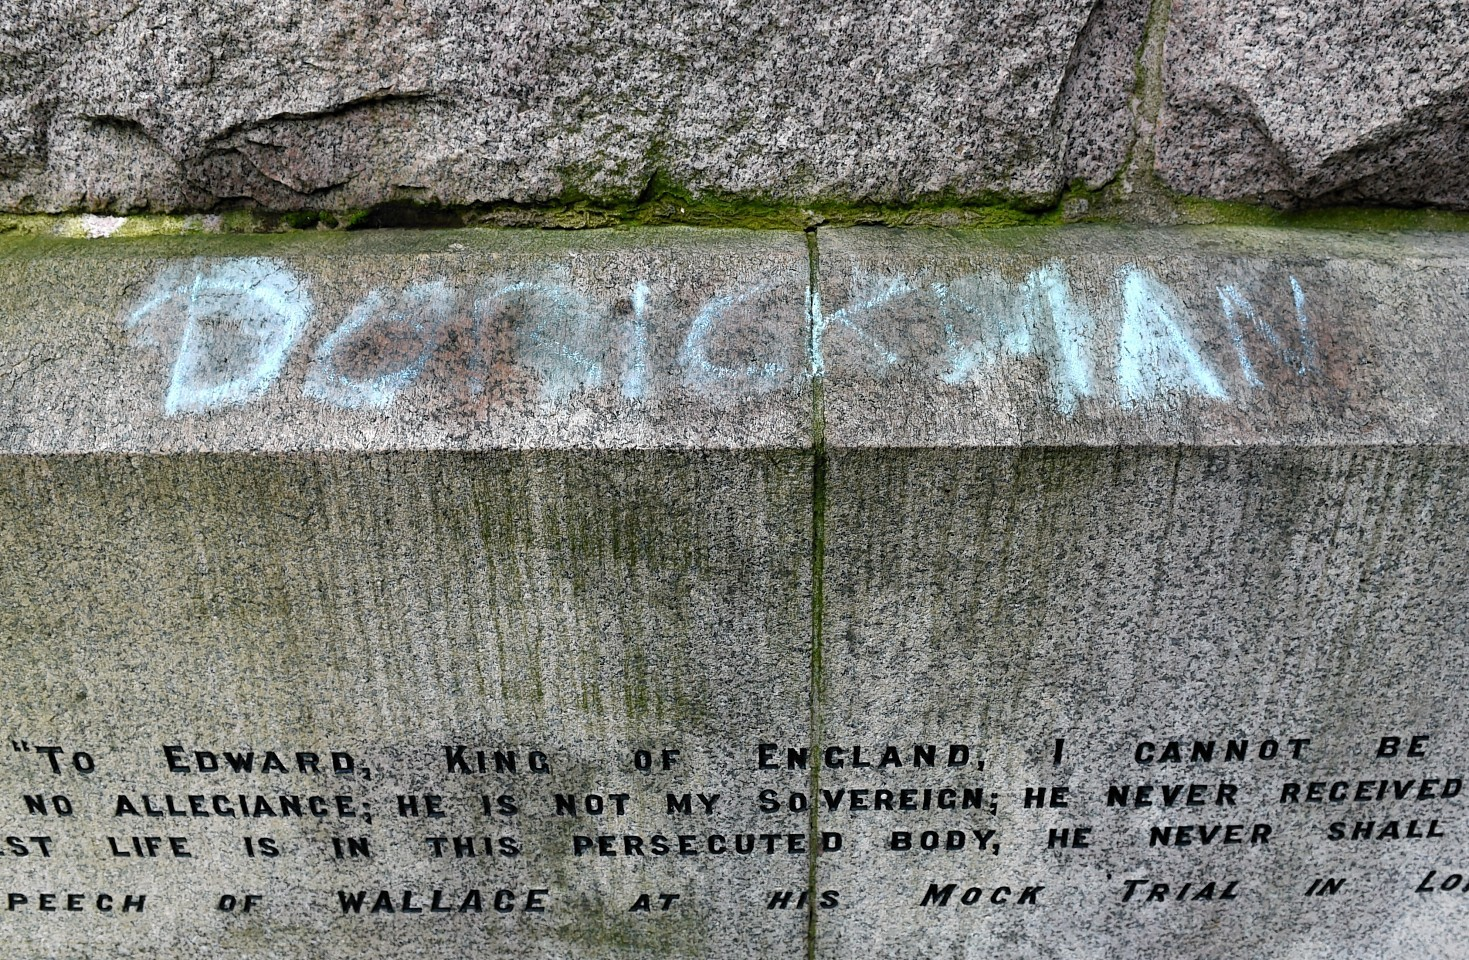 Graffitti on the plinth of the William Wallace statue